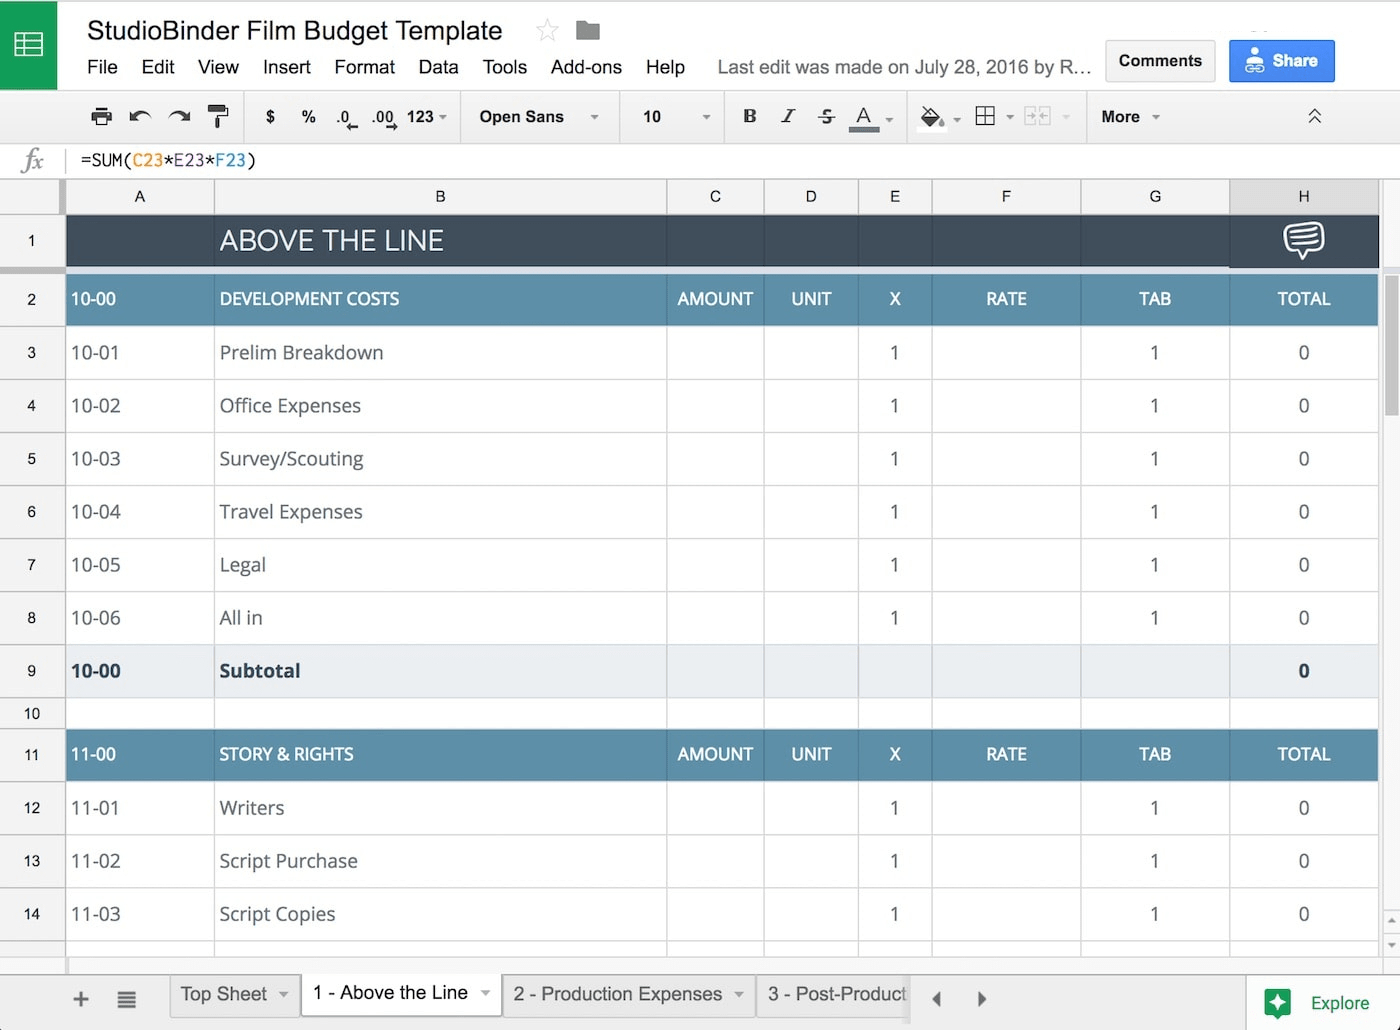 Free Google Budget Spreadsheet Regarding The Essential Guide For Crafting Film Budgets With Free Film Budget